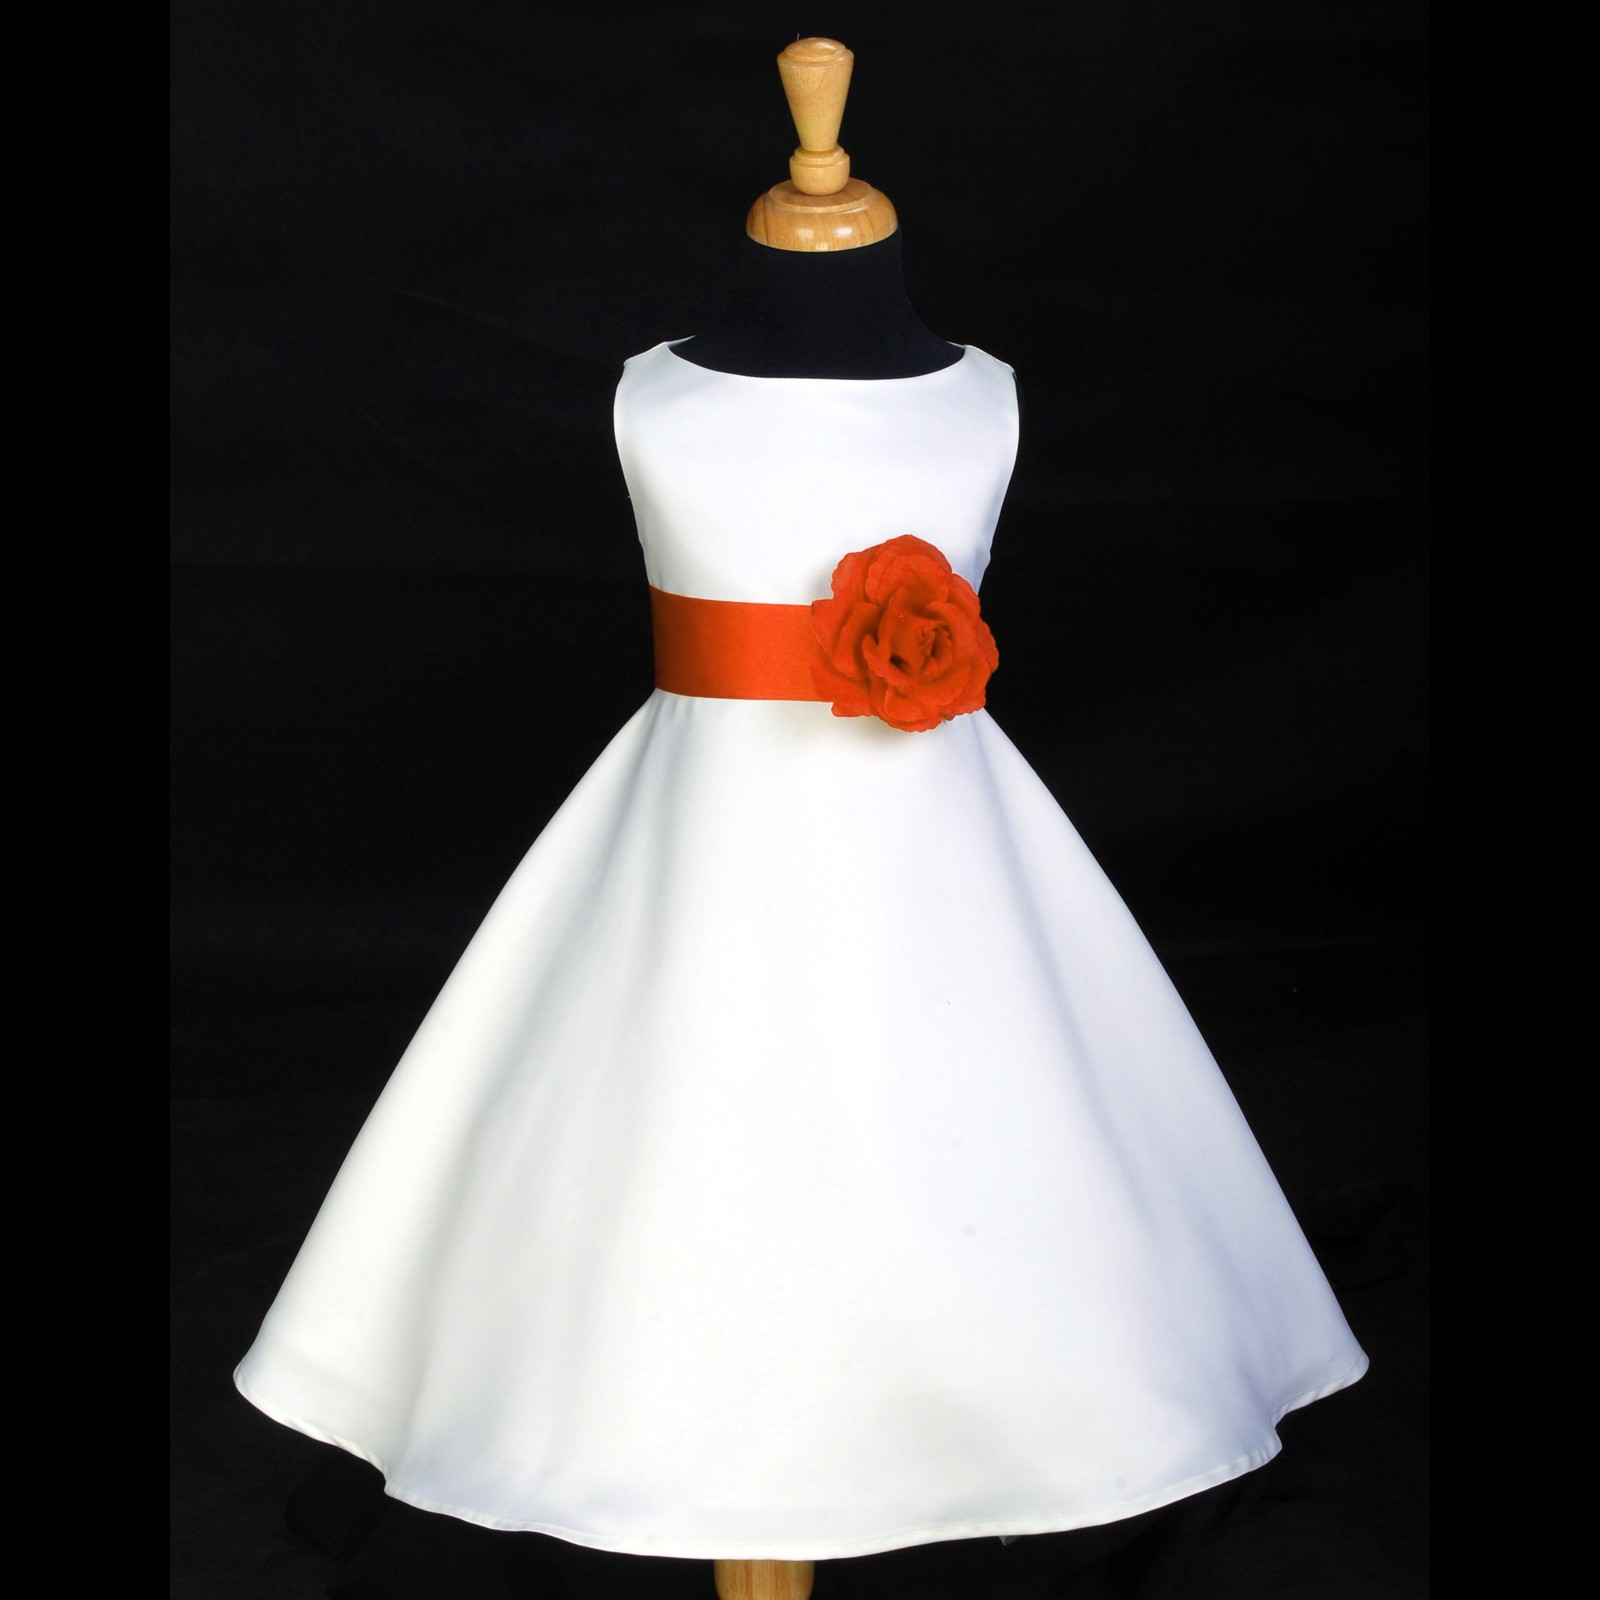 Whiteorange A Line Flower Pin Satin Flower Girl Dress 821s C3